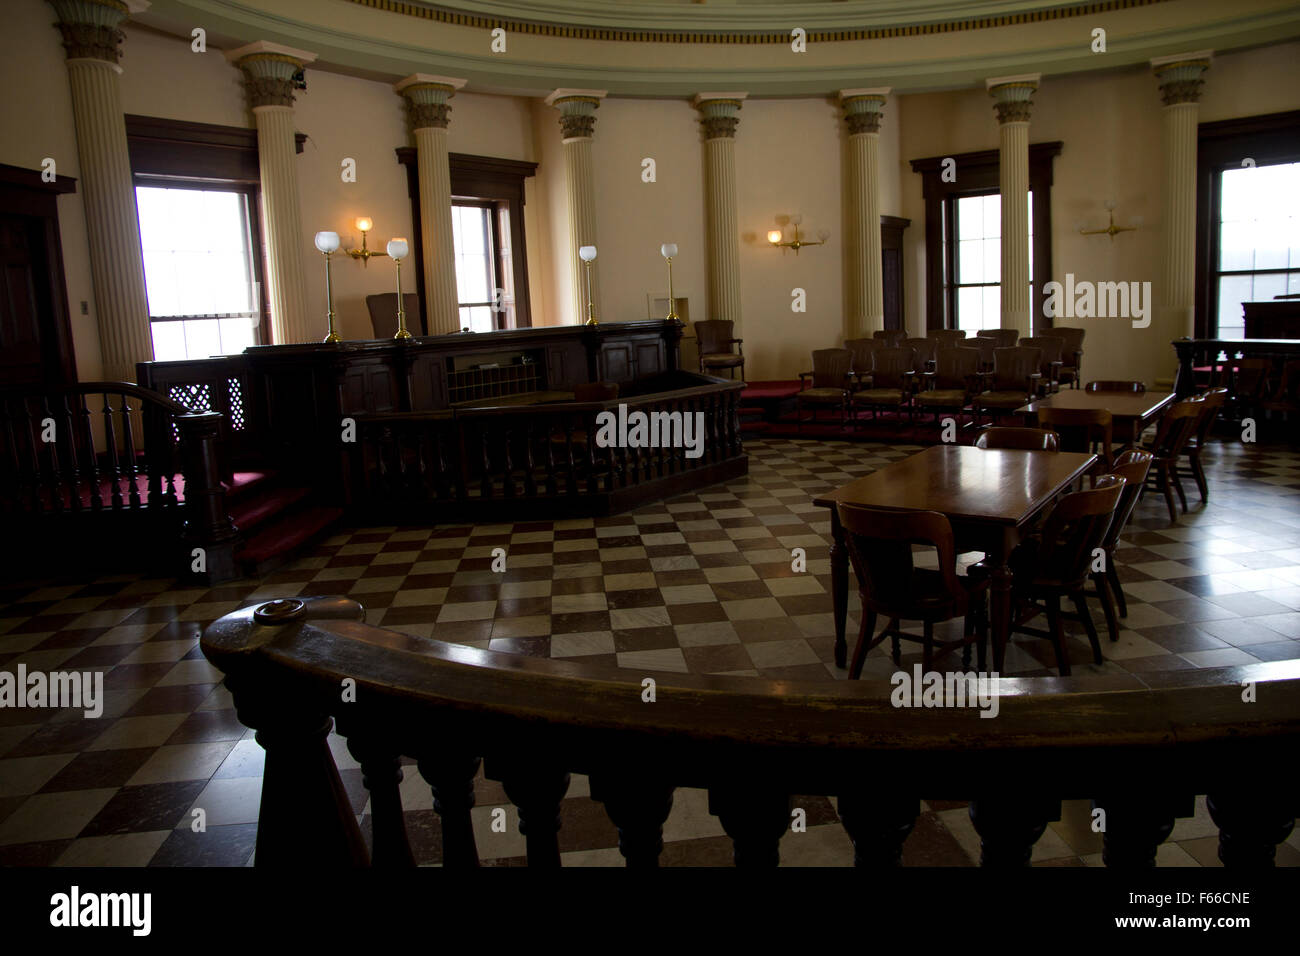 Last used in the 1930s, this courtroom has been restored to its 1860s appearance at the Old Courthouse, St. Louis, - Stock Image